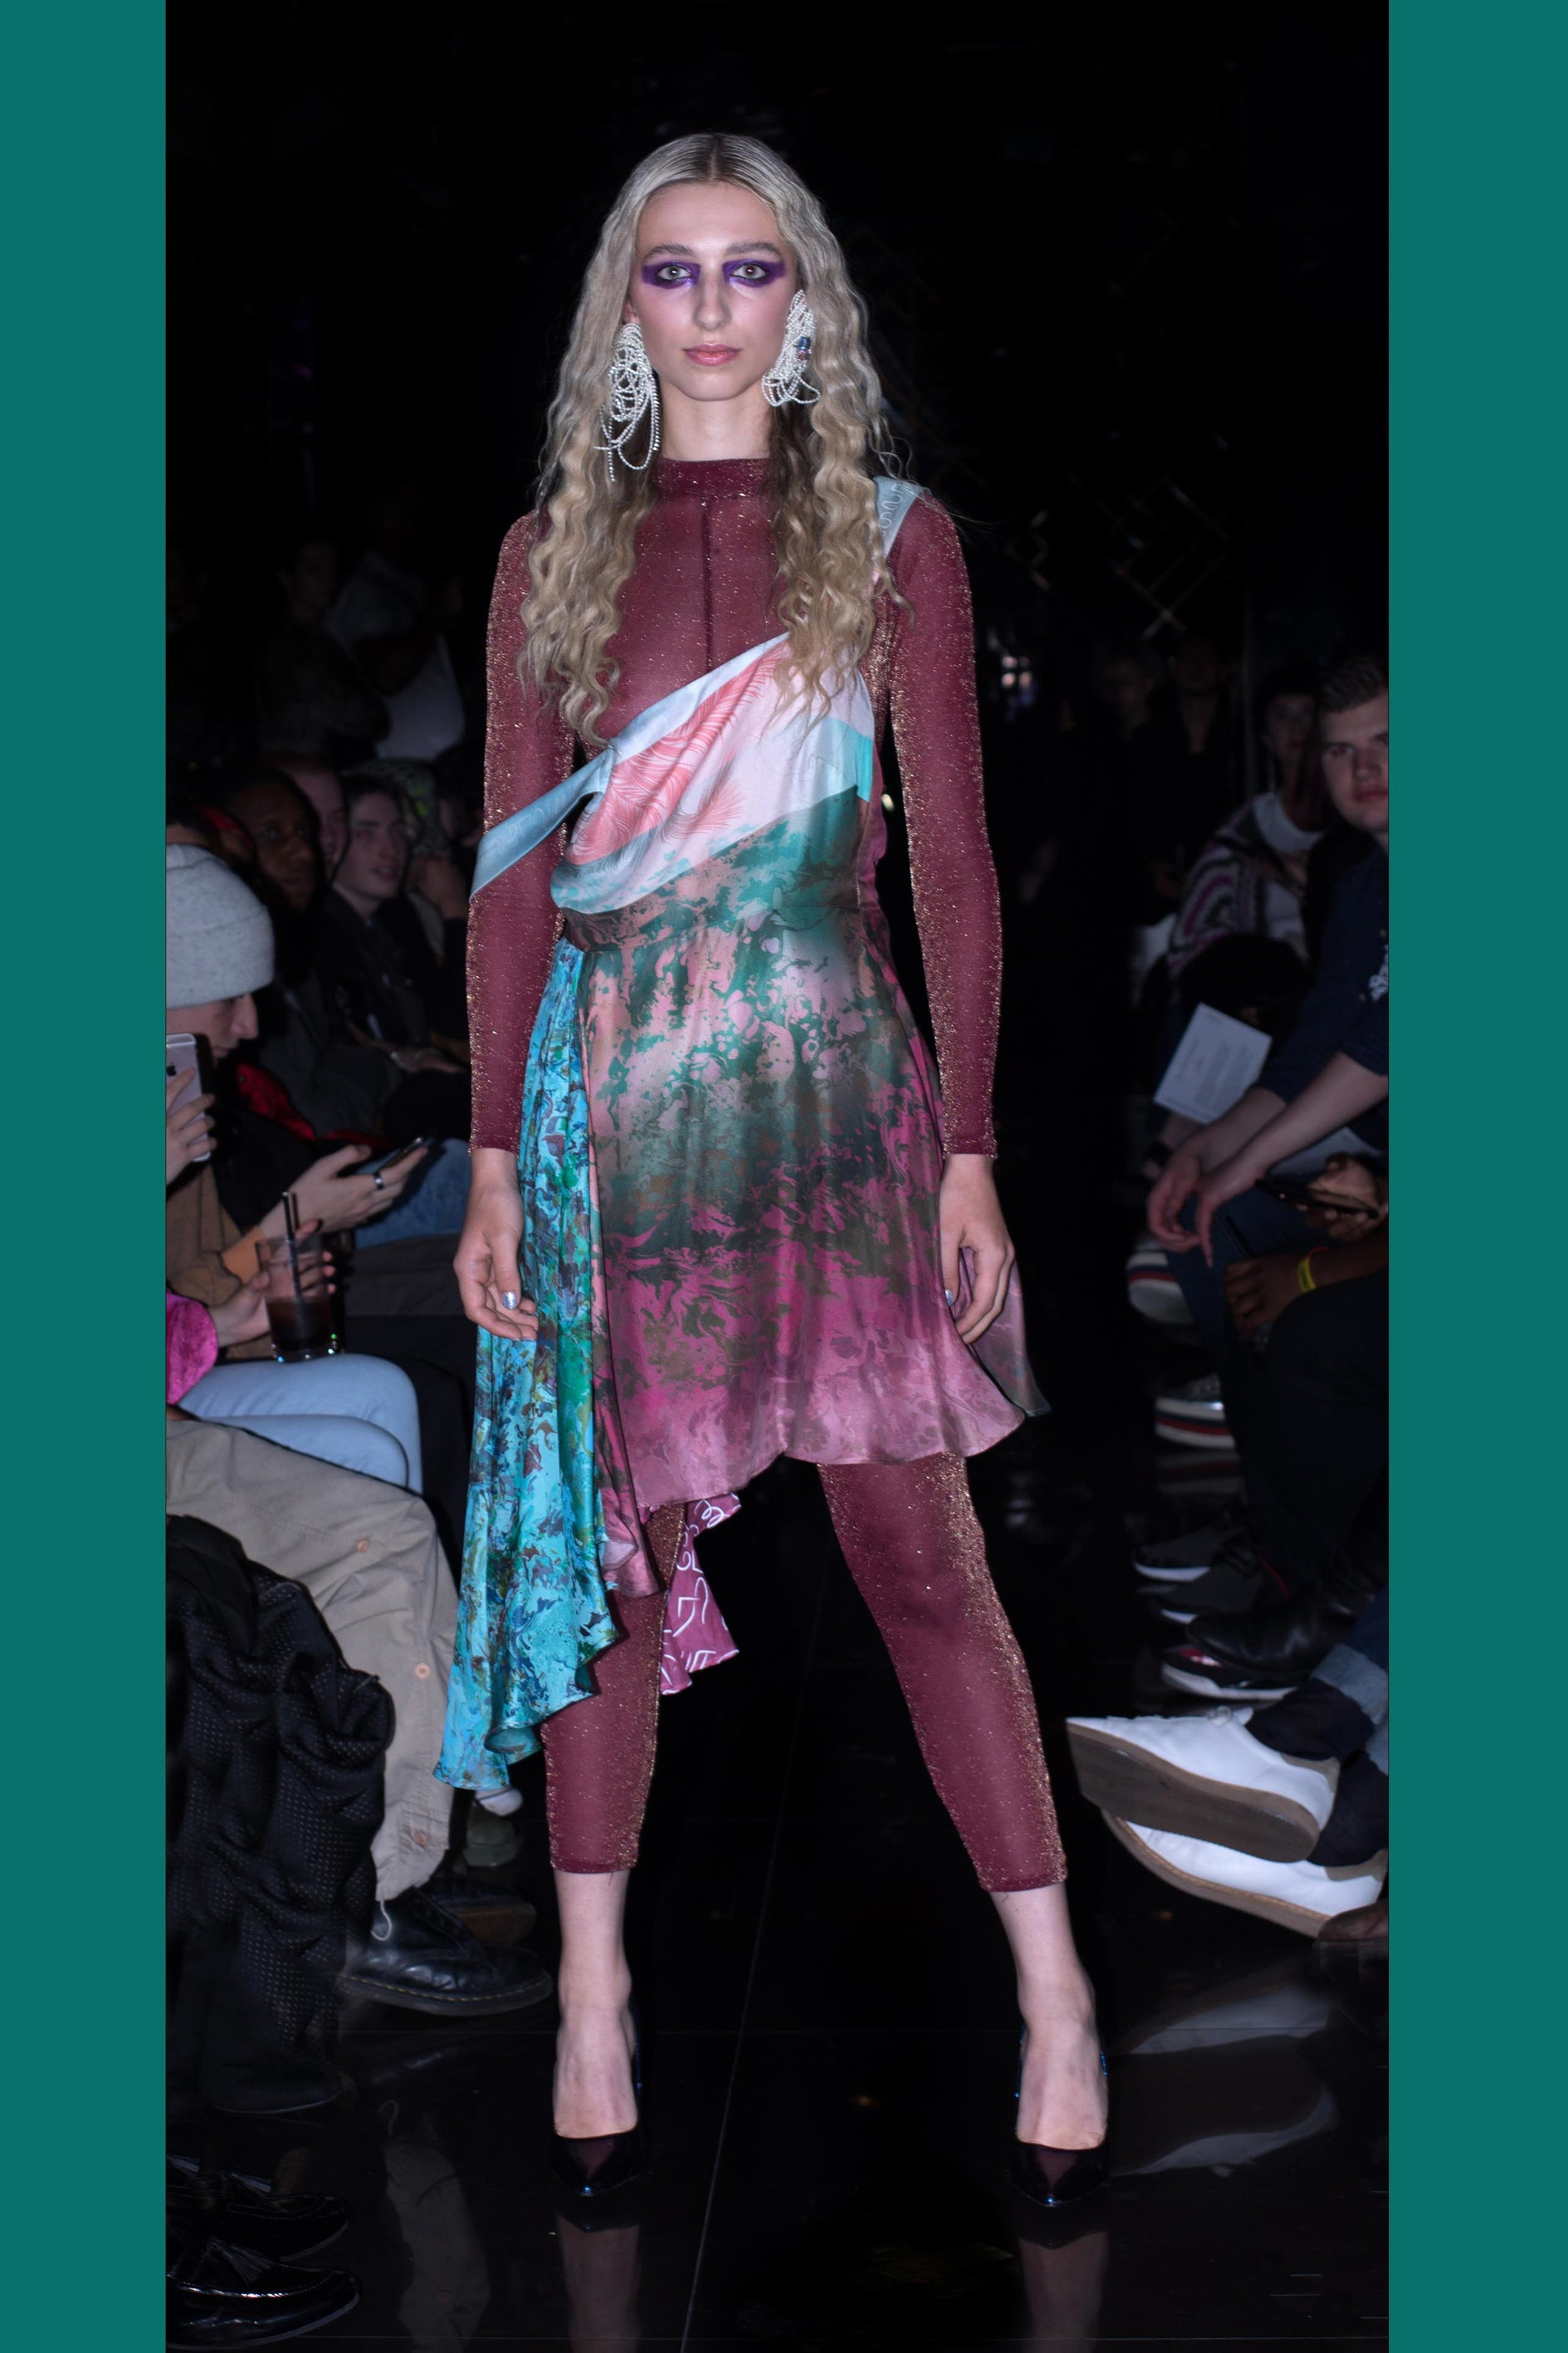 12-CARA-LOOK1-colour.jpg